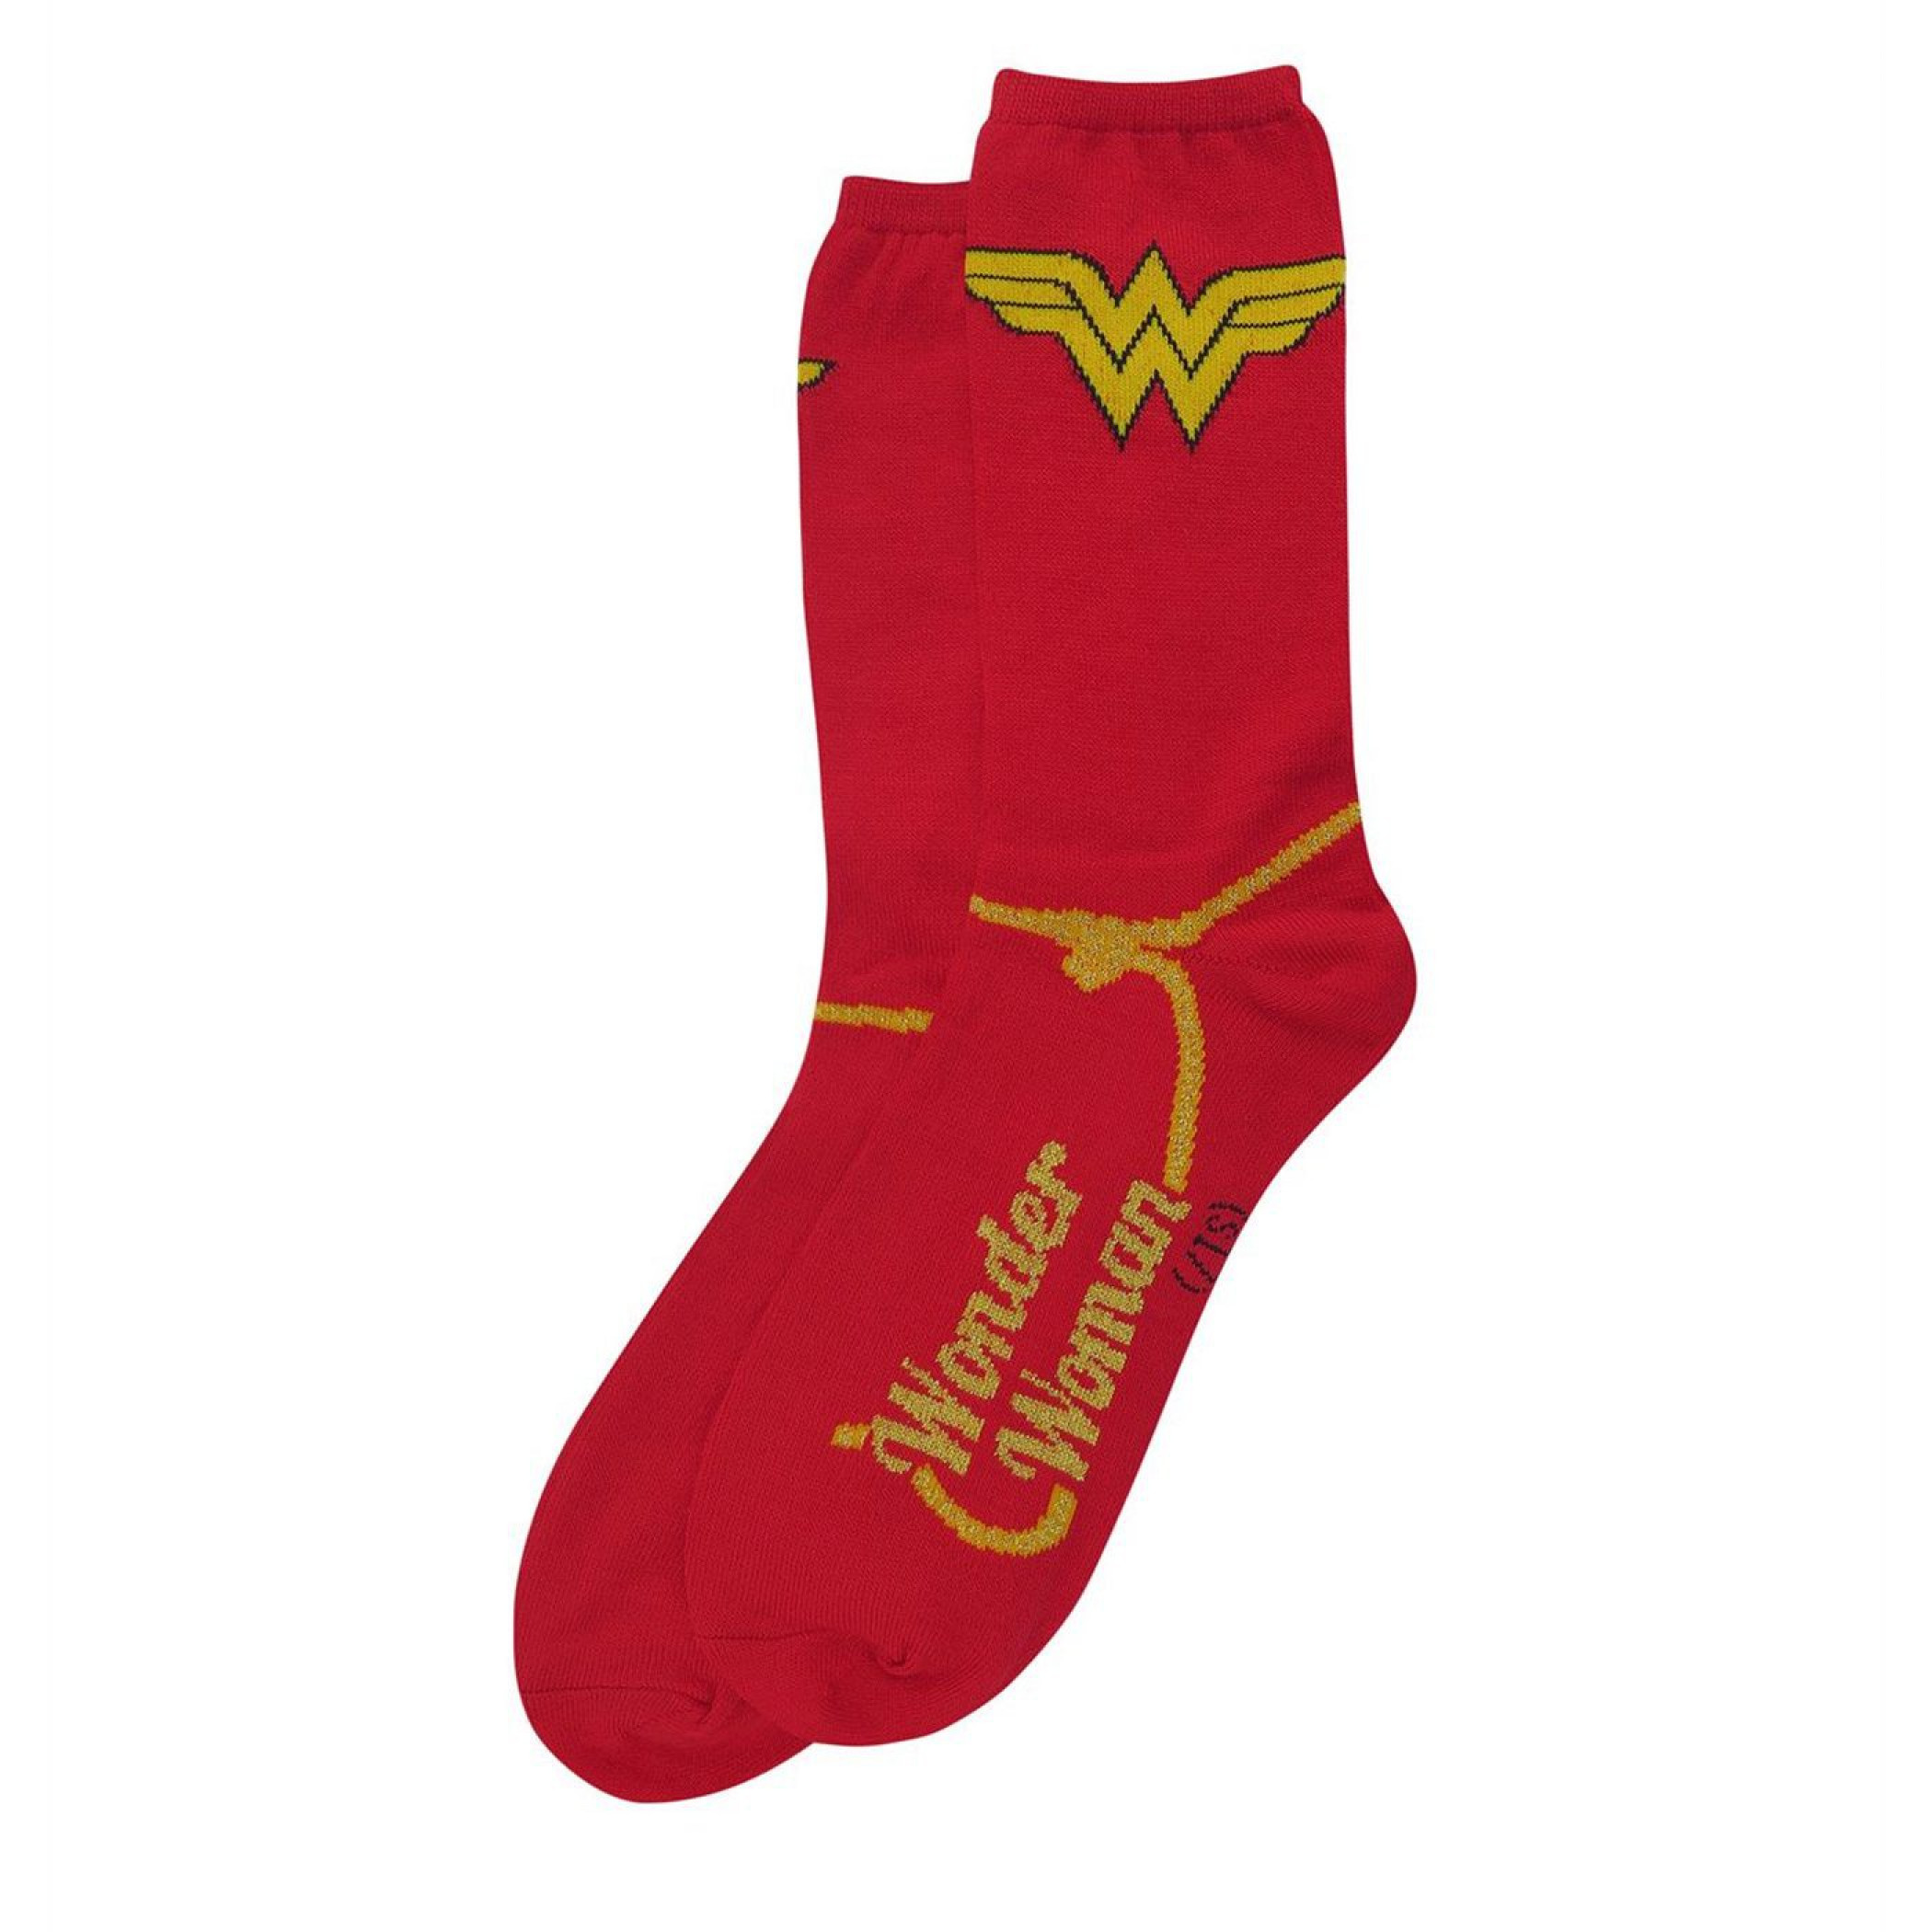 DC Comics Justice League Symbols 7-Pair Pack of Crew Socks